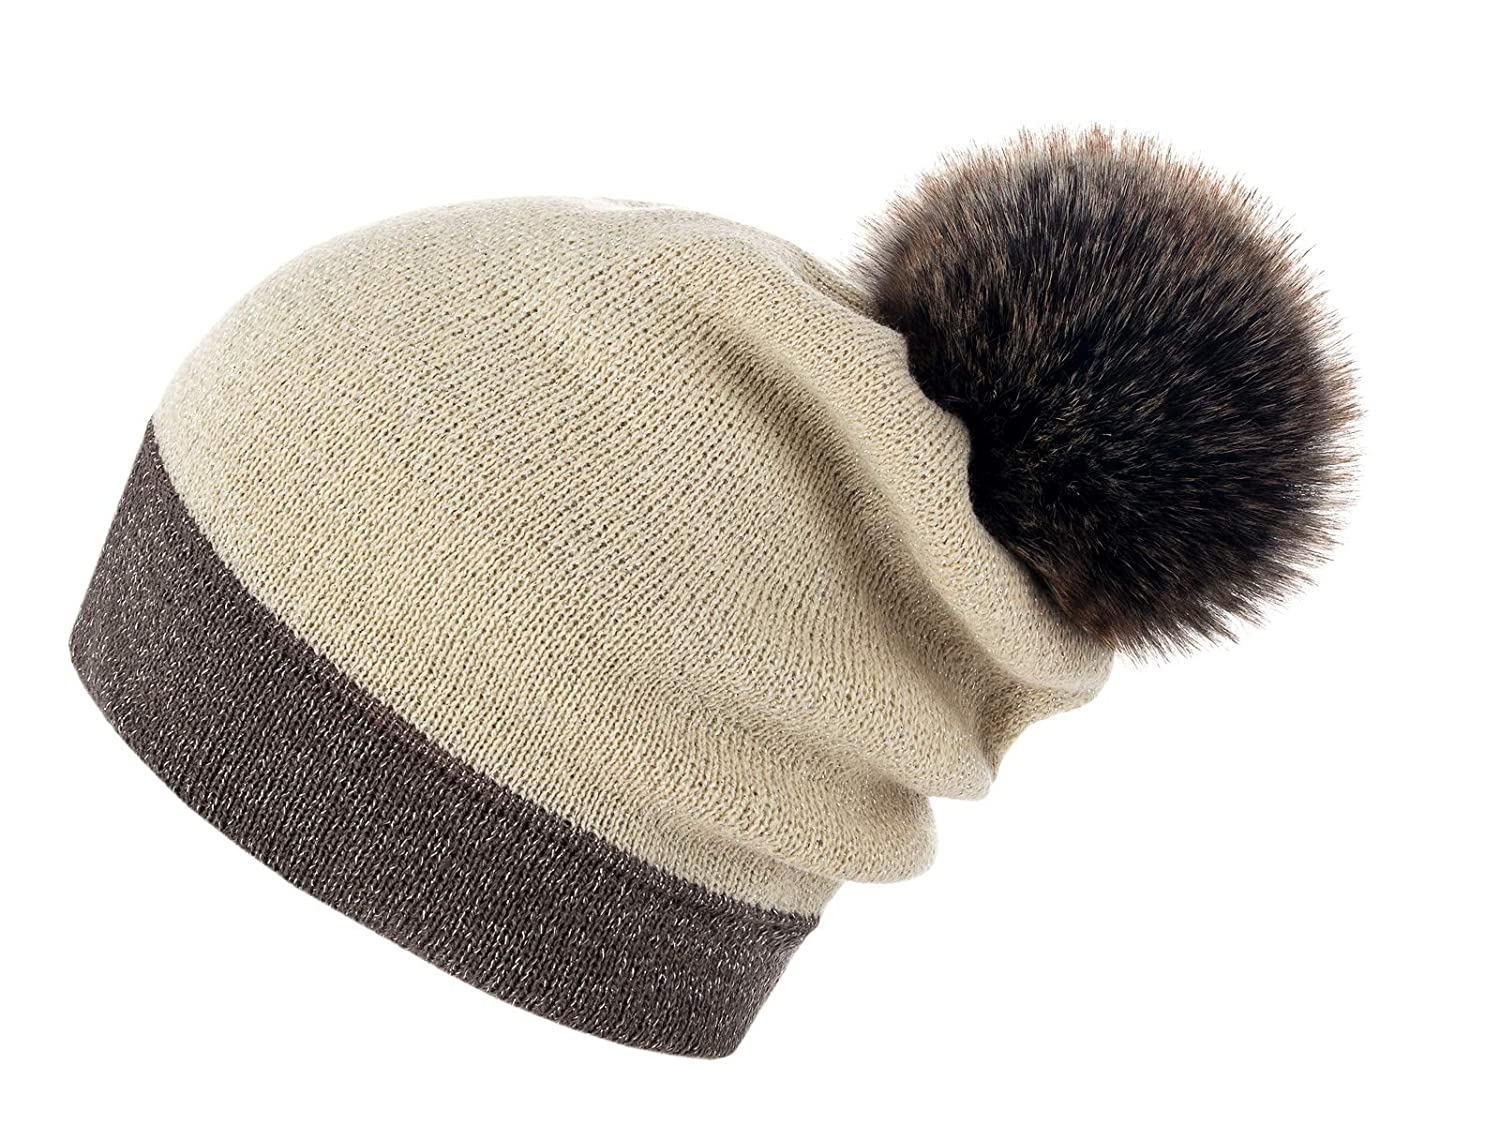 Brown Ecru Siberian Brown Futrzane Women's Slouchy Beanie Hat with a Faux Fur Pom Pom